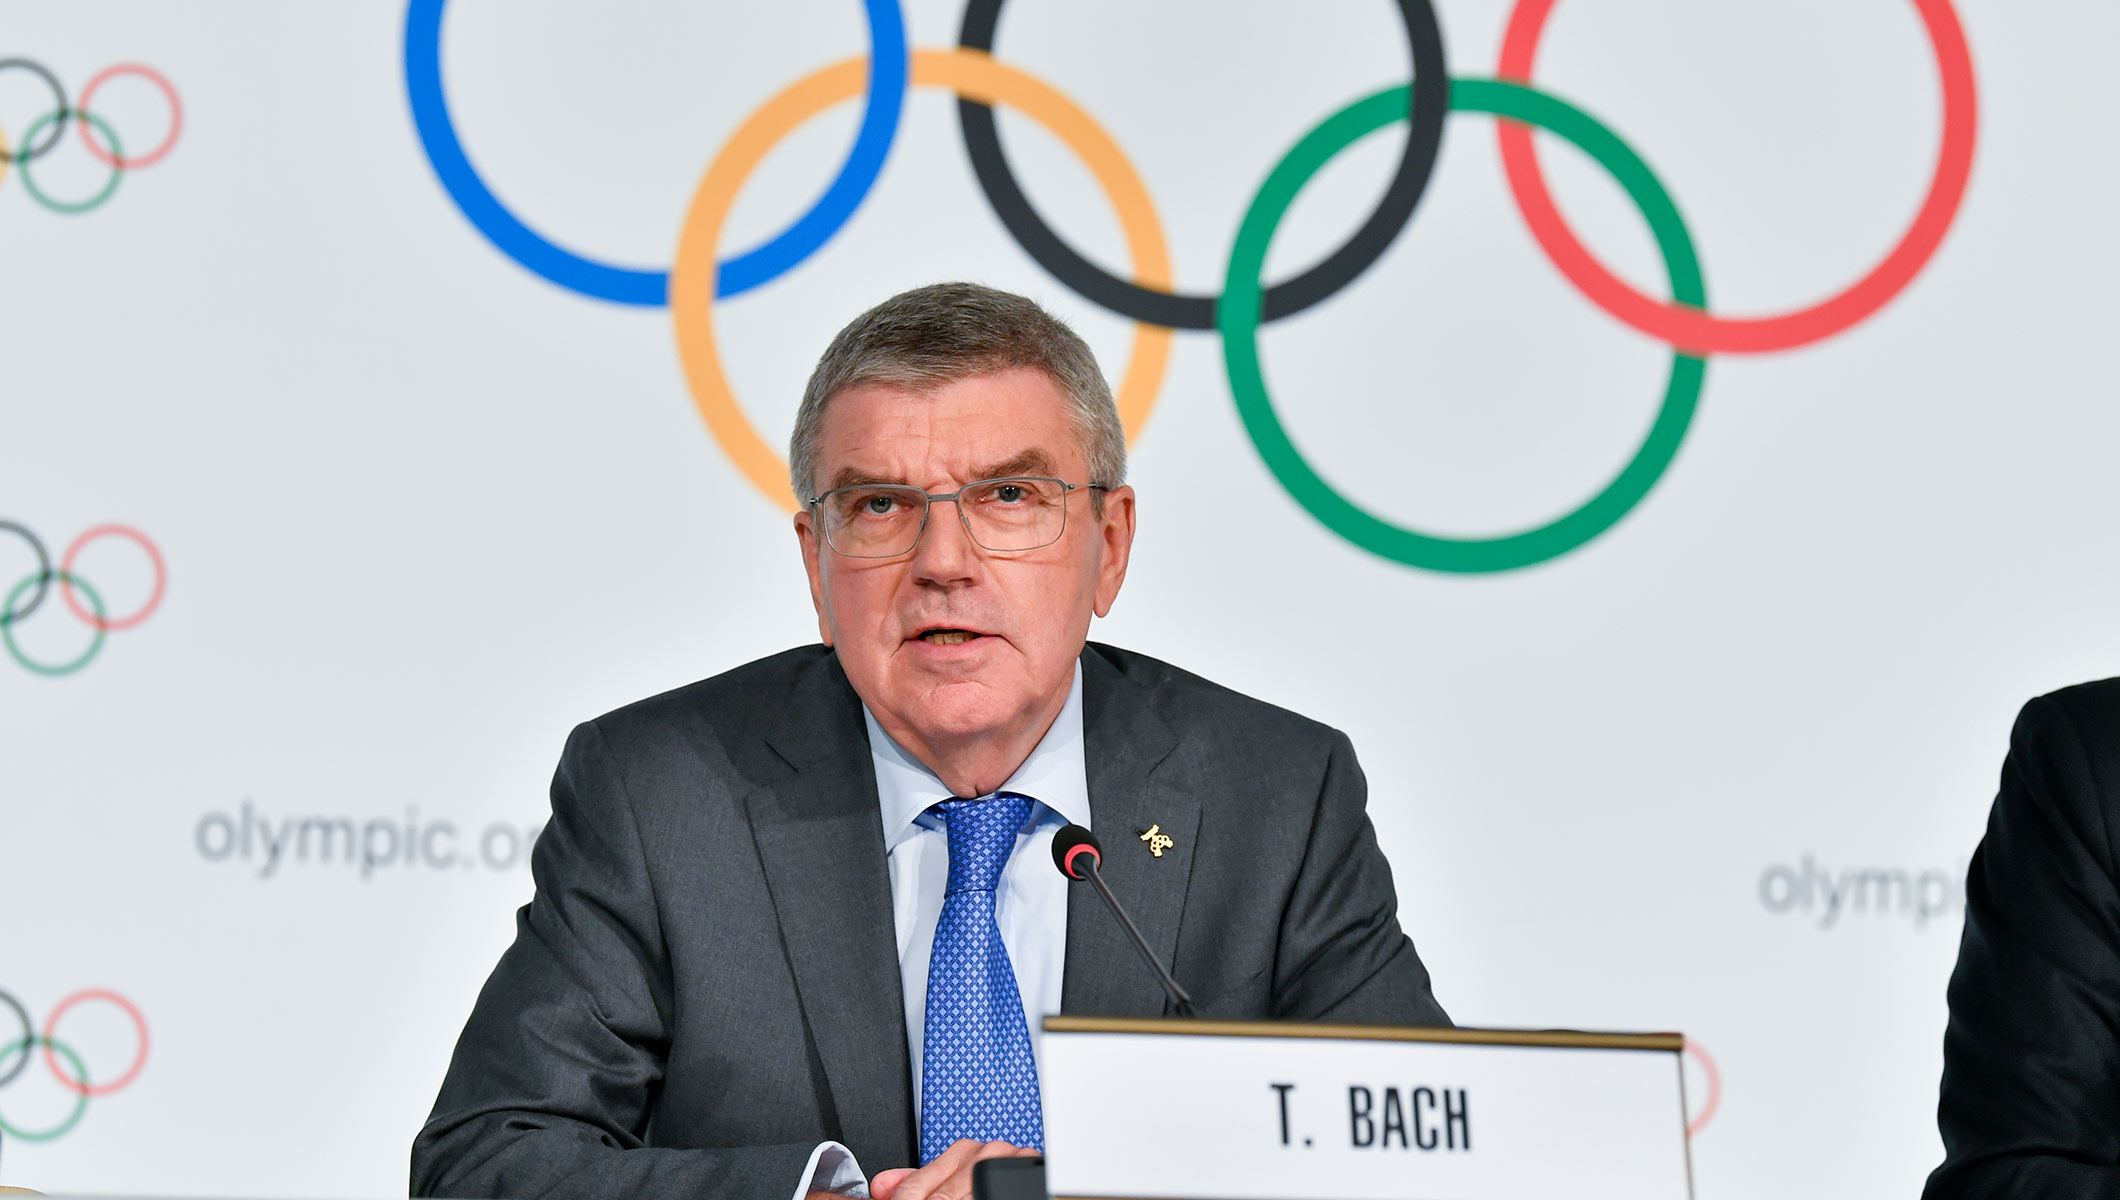 IOC Approves Financial Envelope Of USD 800 Million To Address The COVID-19 Crisis